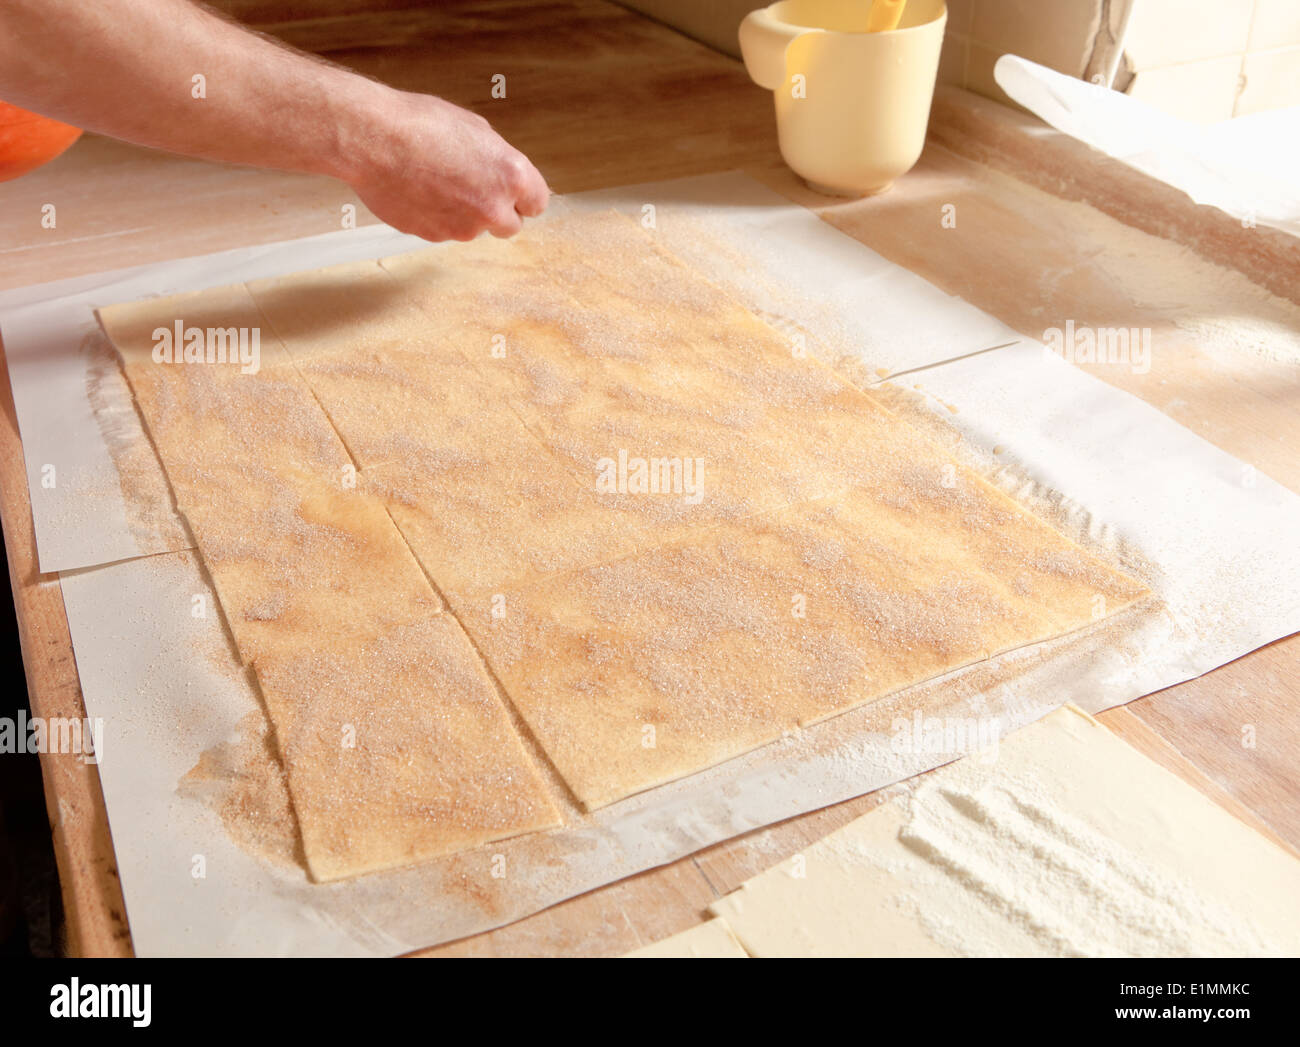 Professional Bakery - Adding Sugar on Top of Pastry - Stock Image